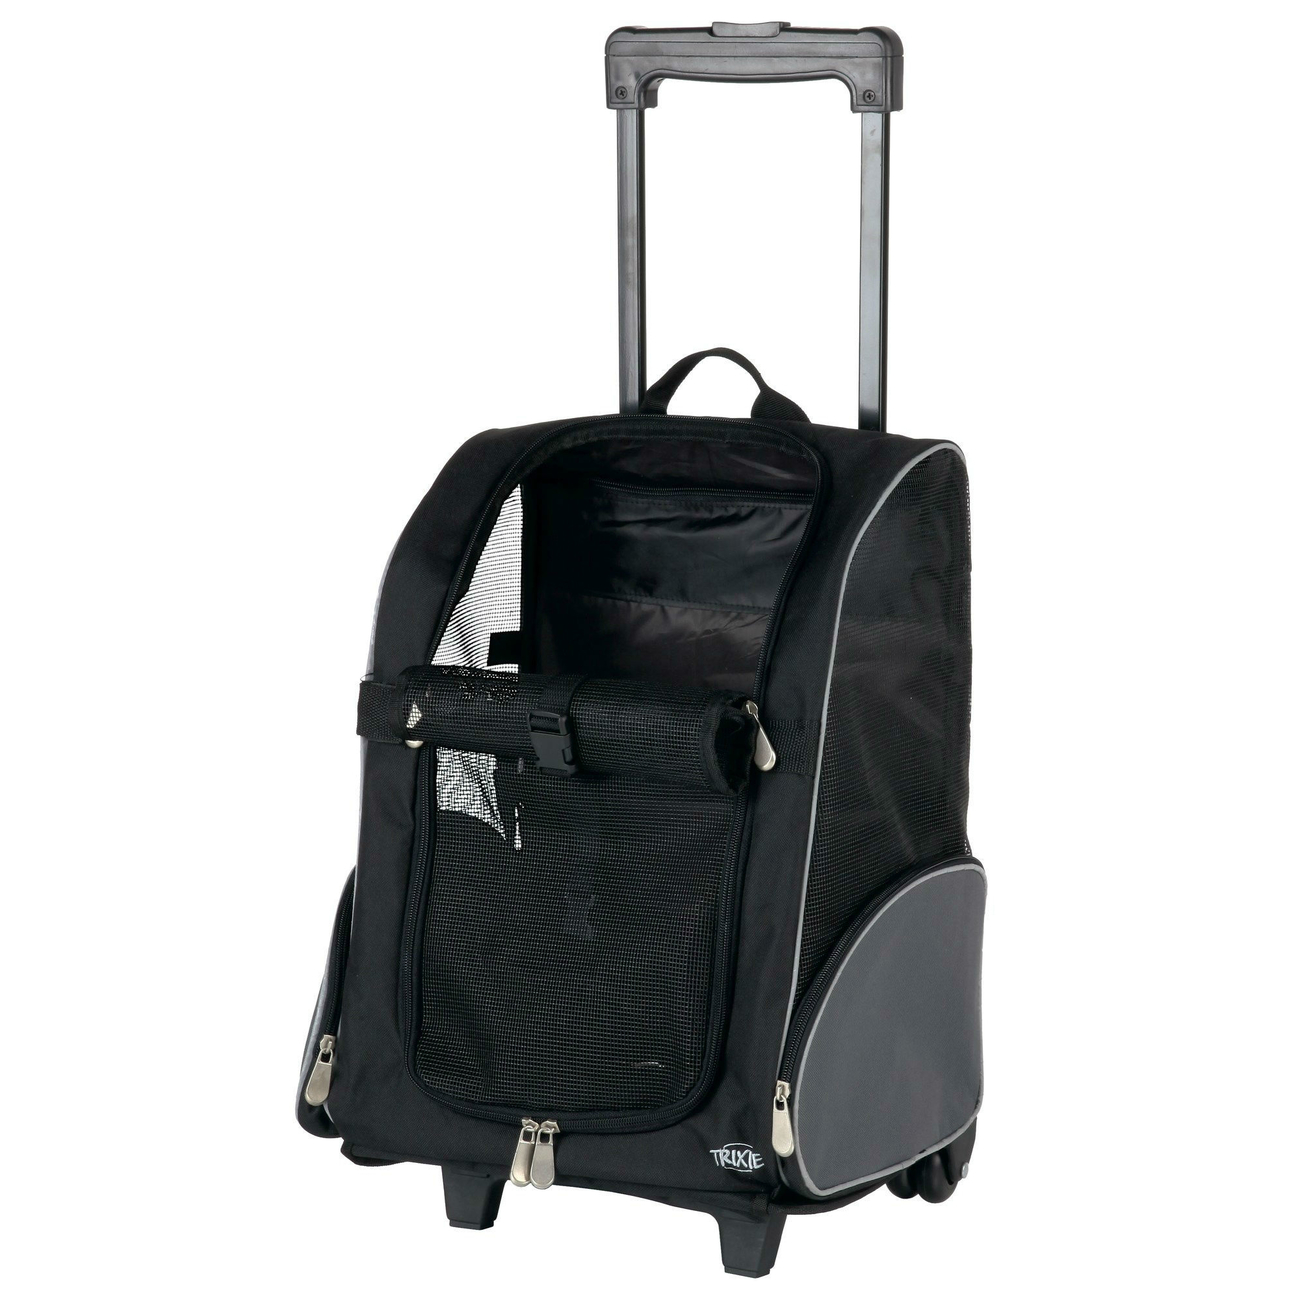 Trixie Hundetrolley Rucksack 2in1 2880